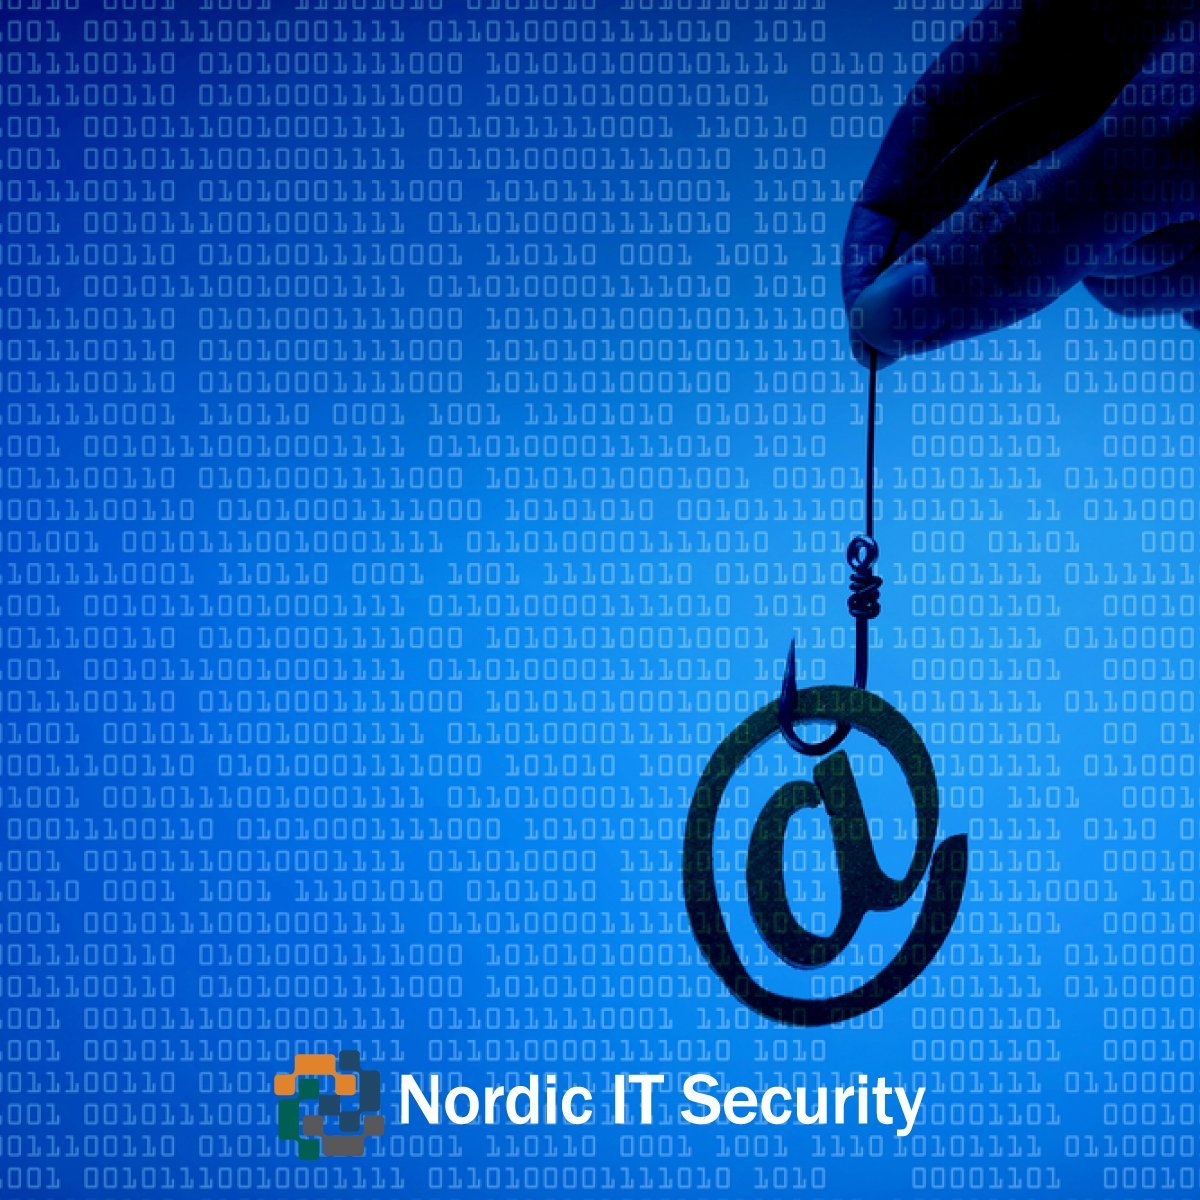 Phishing Attacks Getting Sophisticated, Corporate Executives Hacked - Blog post from Nordic IT Security Forum 2020